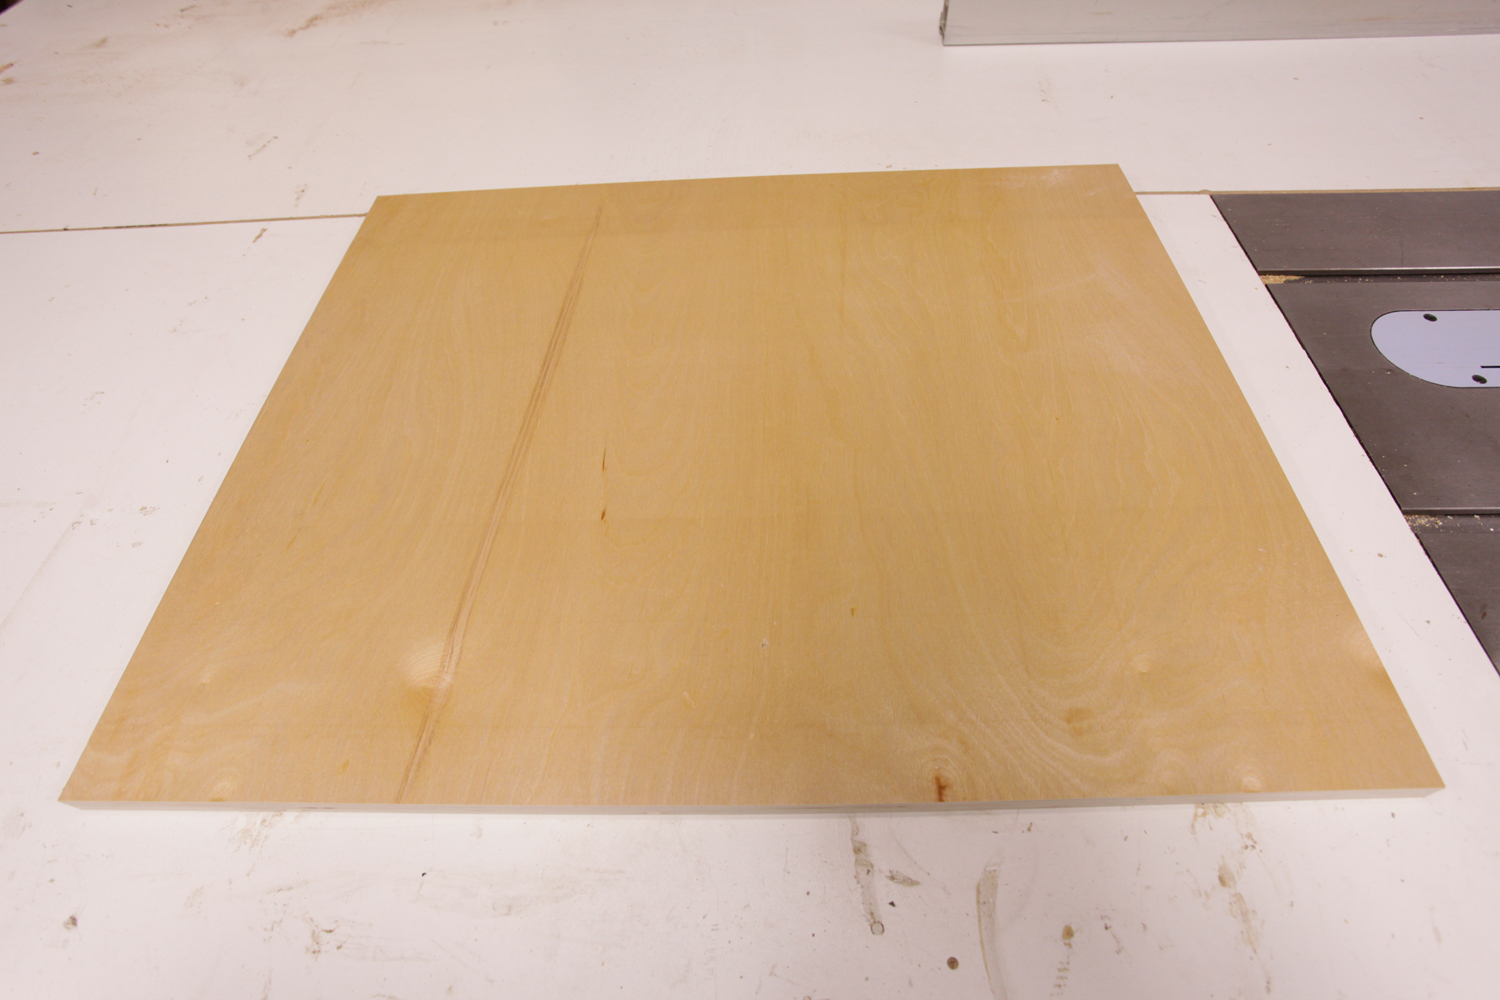 Picture of Cutting Out Top